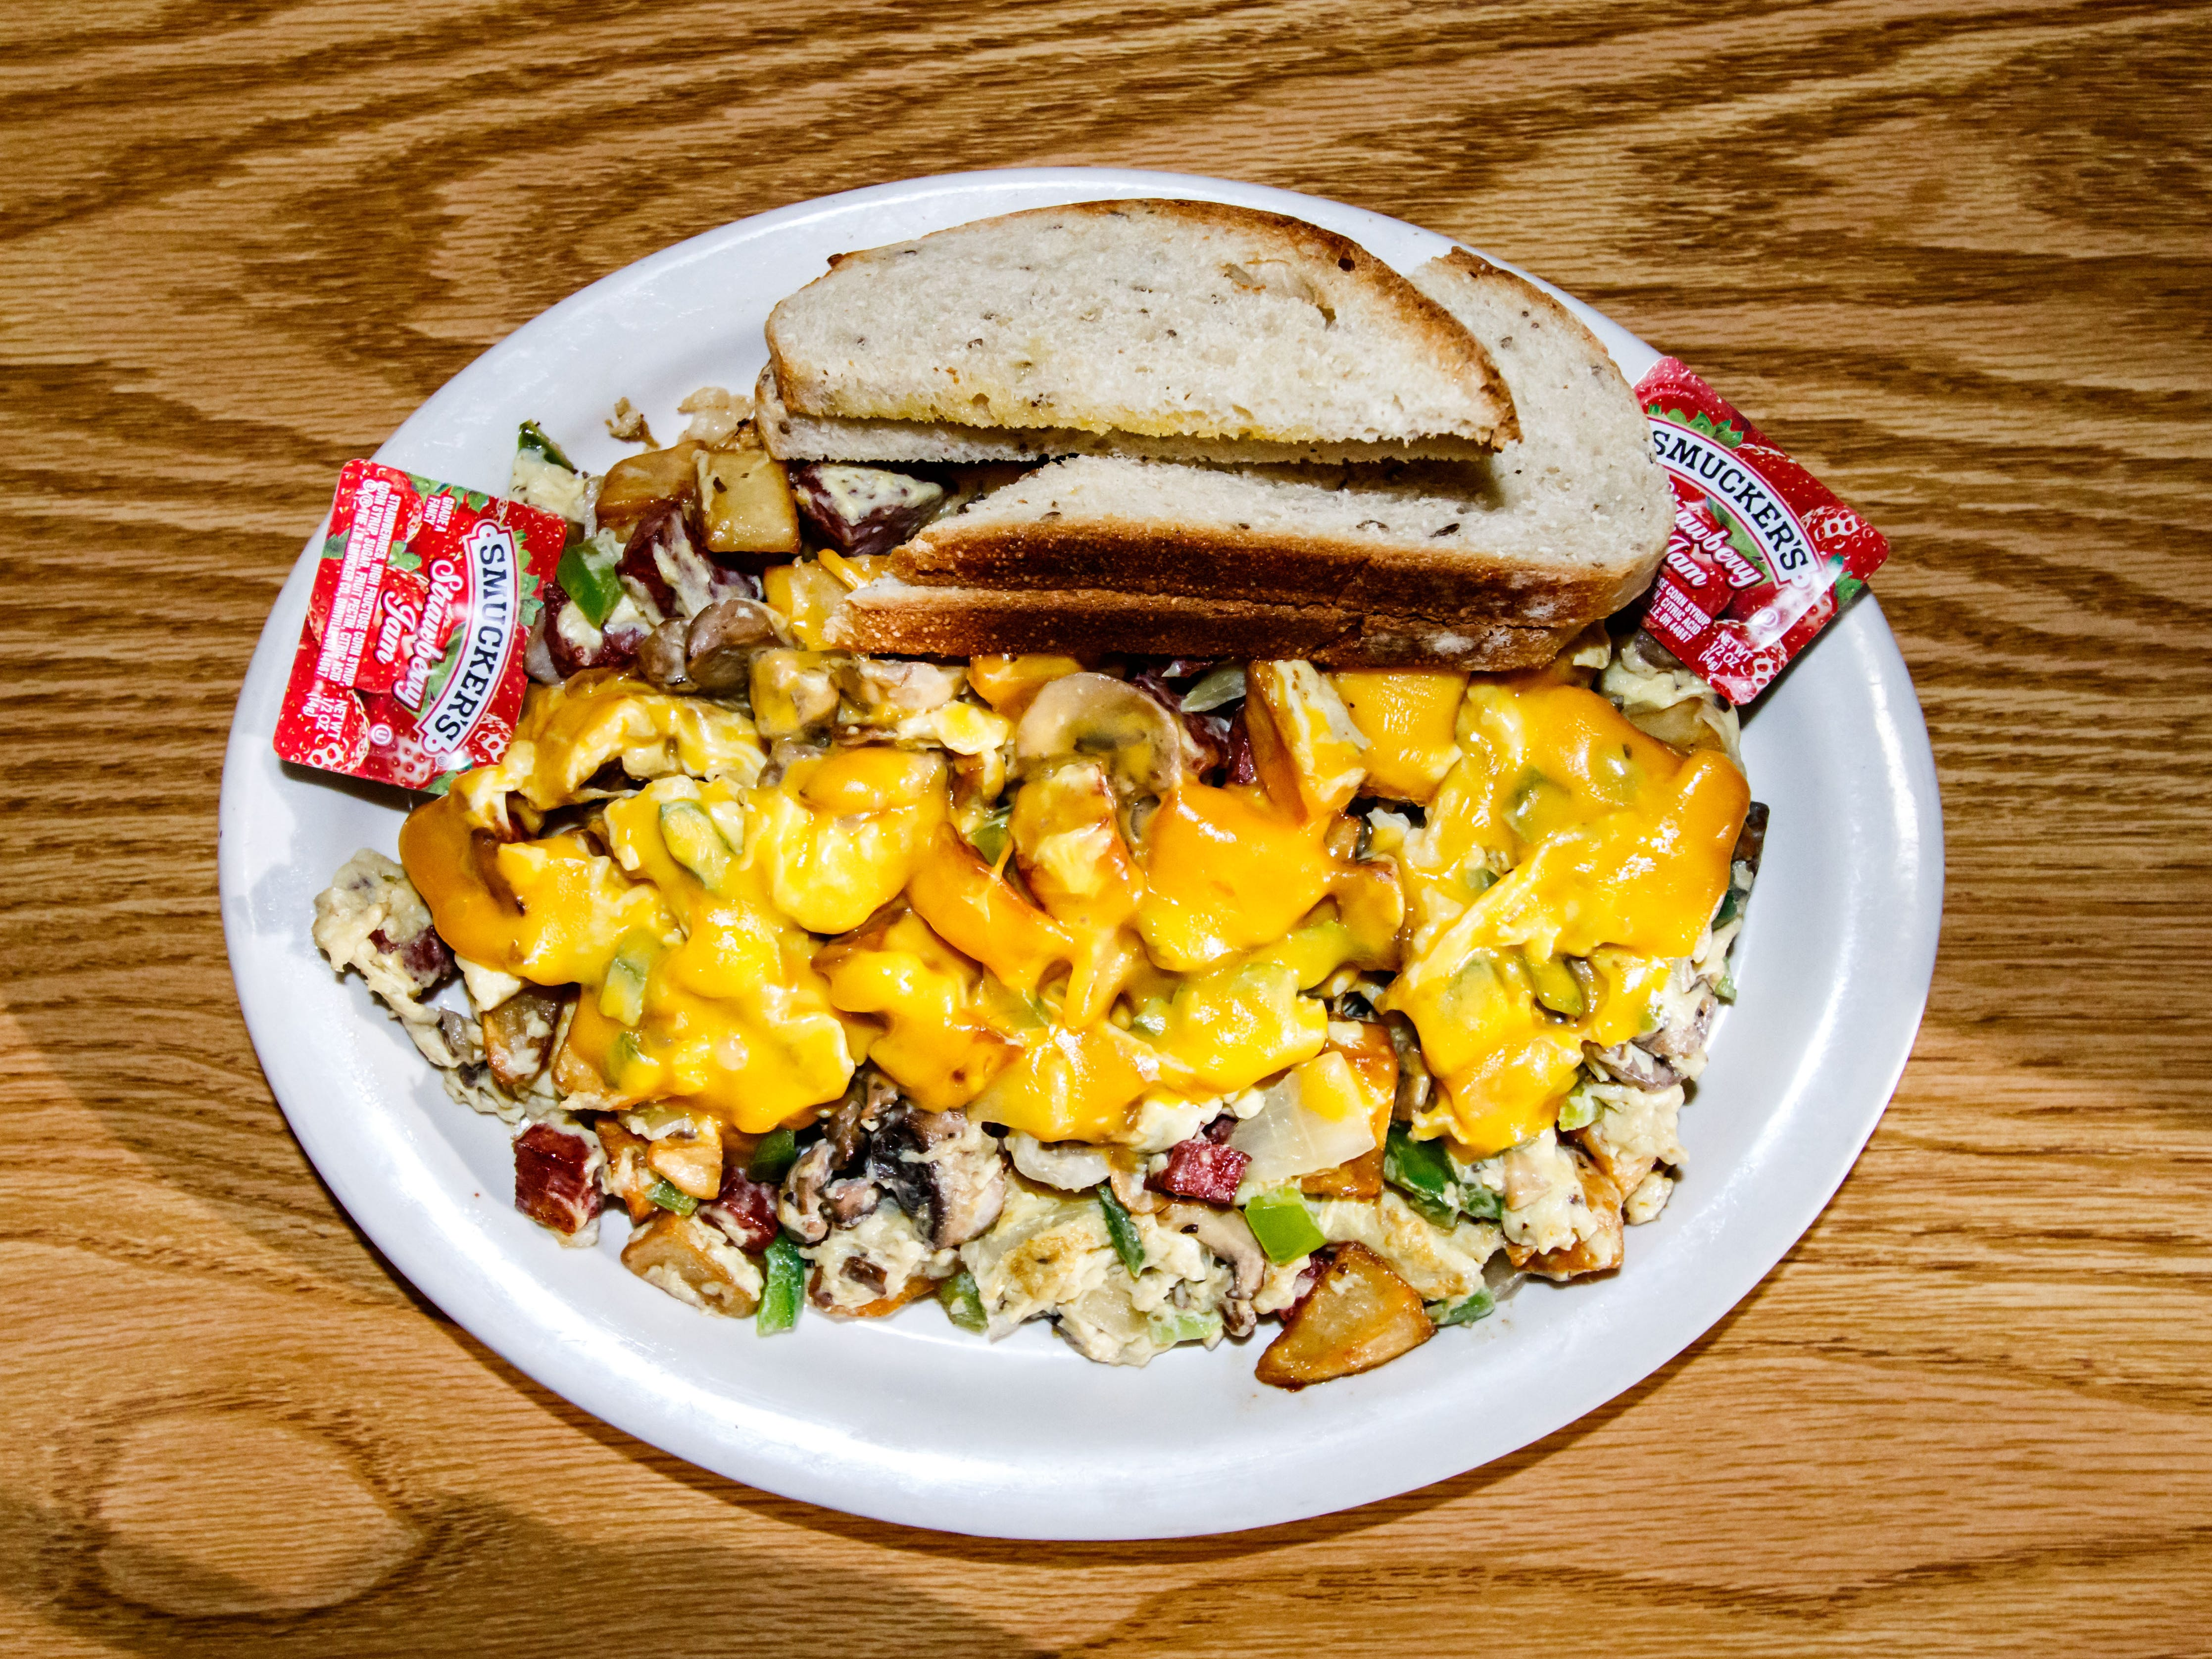 The Super Hoppel Poppel plate at Benji's Delicatessen in Shorewood features scrambled eggs blended with crisp browned potatoes, fried salami, green peppers, onions, fresh mushrooms and your choice of cheese.